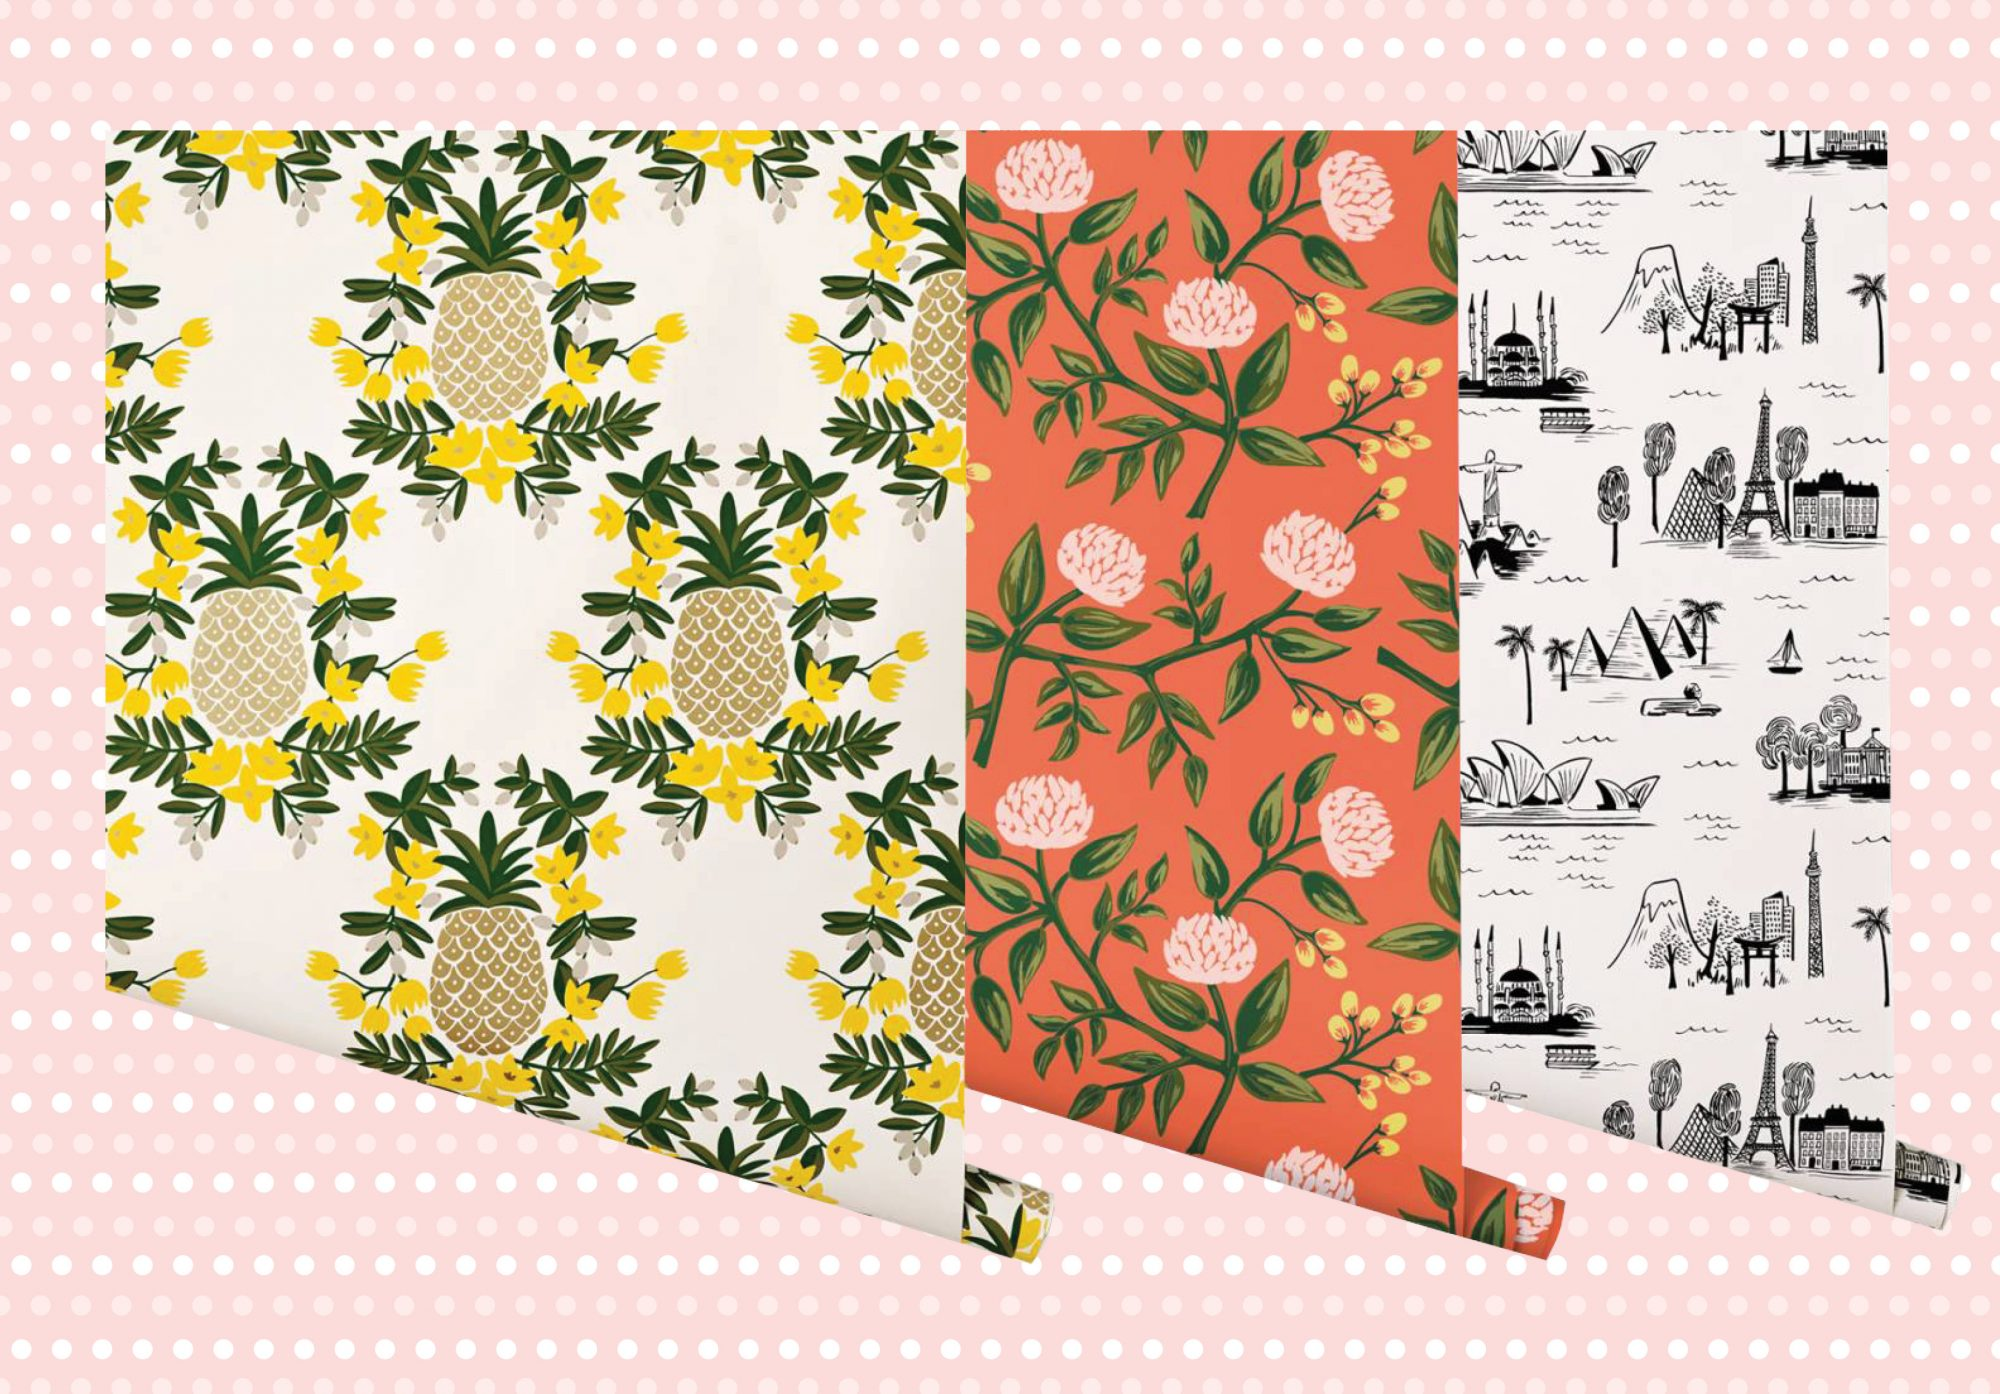 Three wallpaper patterns in Pineapple, floral, and city prints.